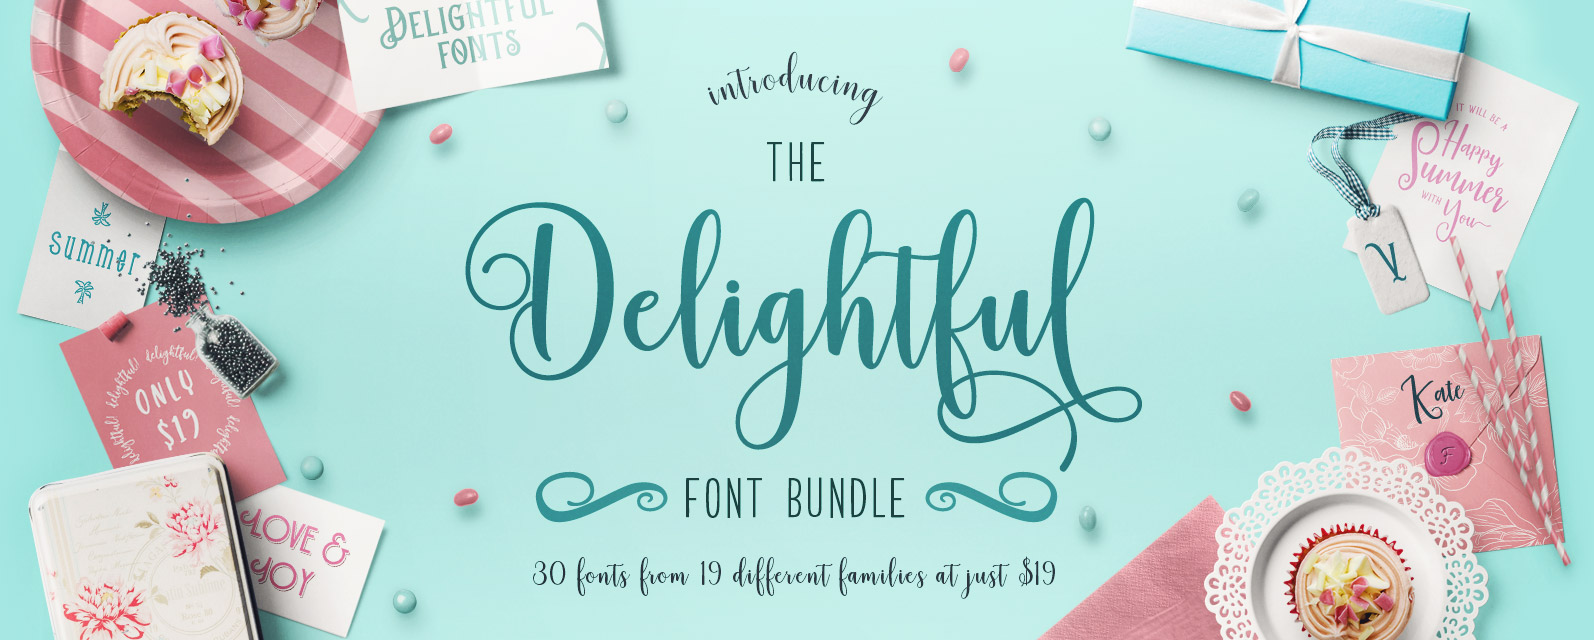 The Delightful Font Bundle Cover